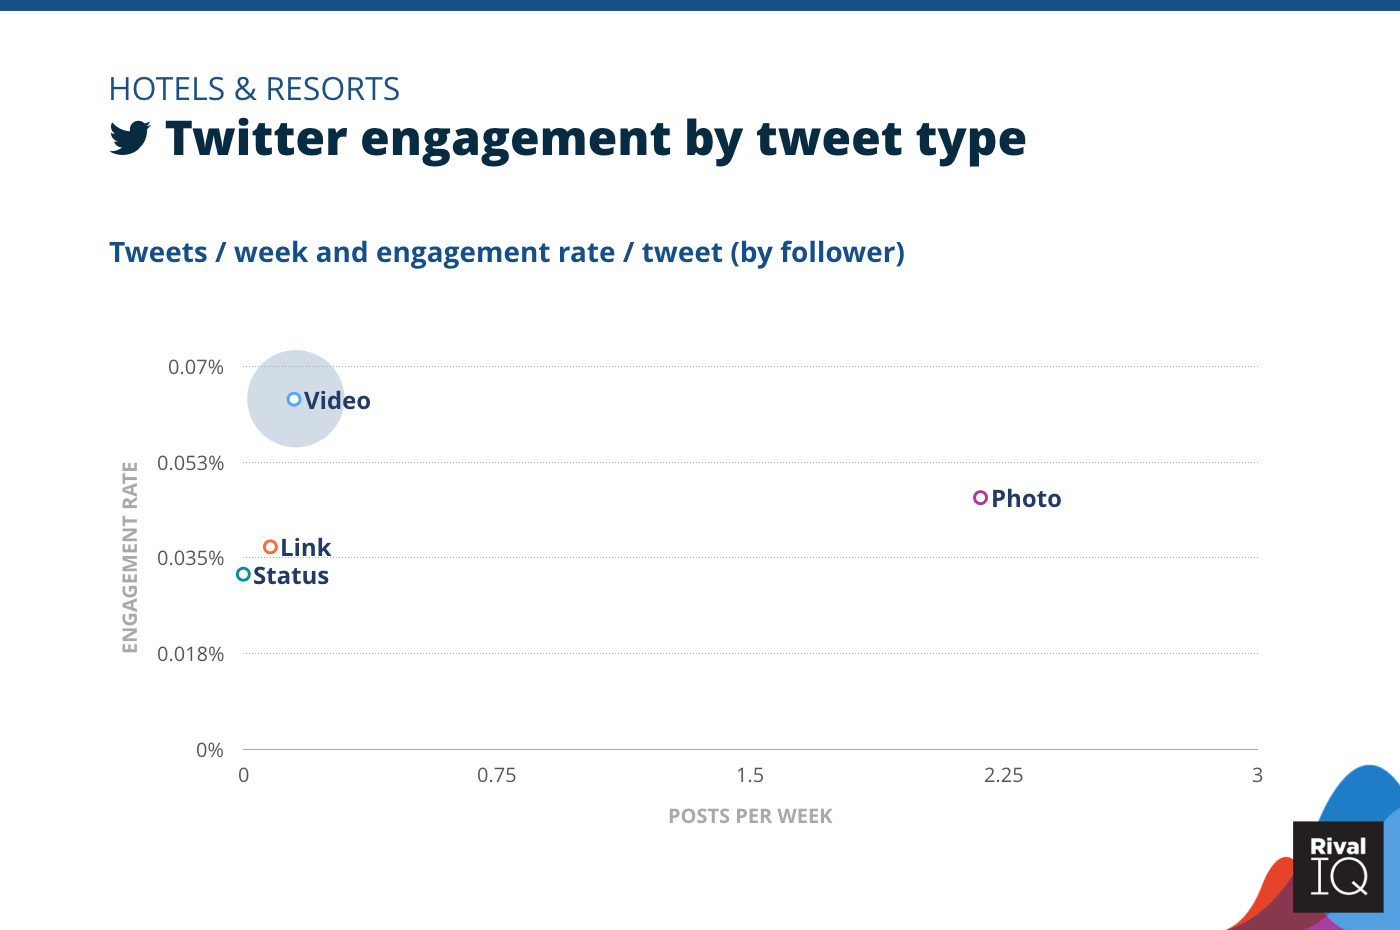 Chart of Twitter posts per week and engagement rate by tweet type, Hotels & Resorts